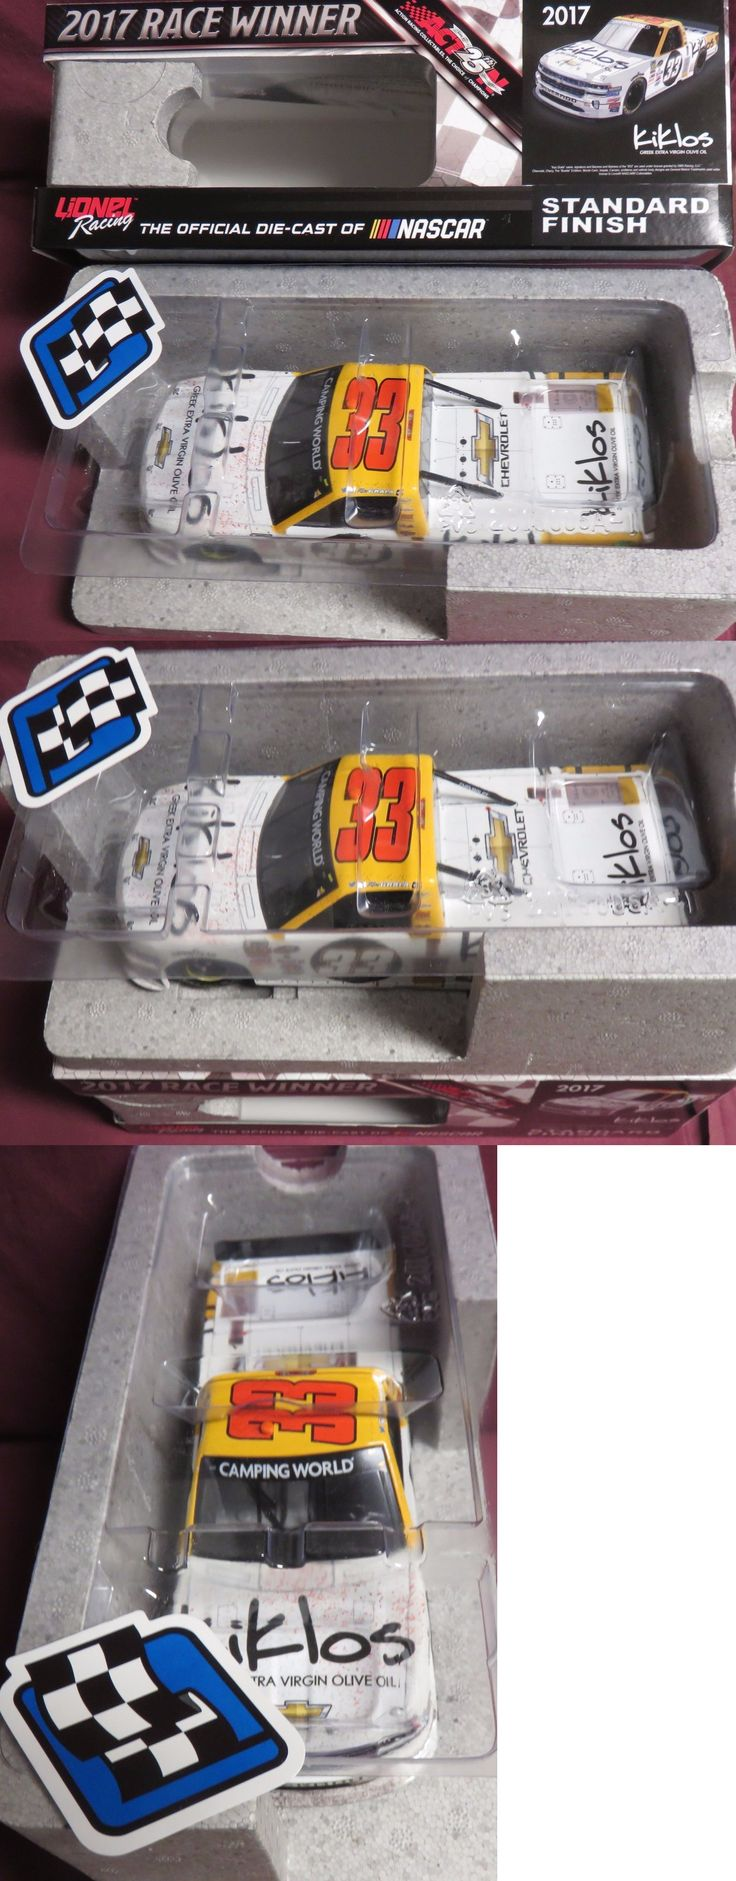 Sport and touring cars 180272 brand new 1 24 2017 daytona race win truck